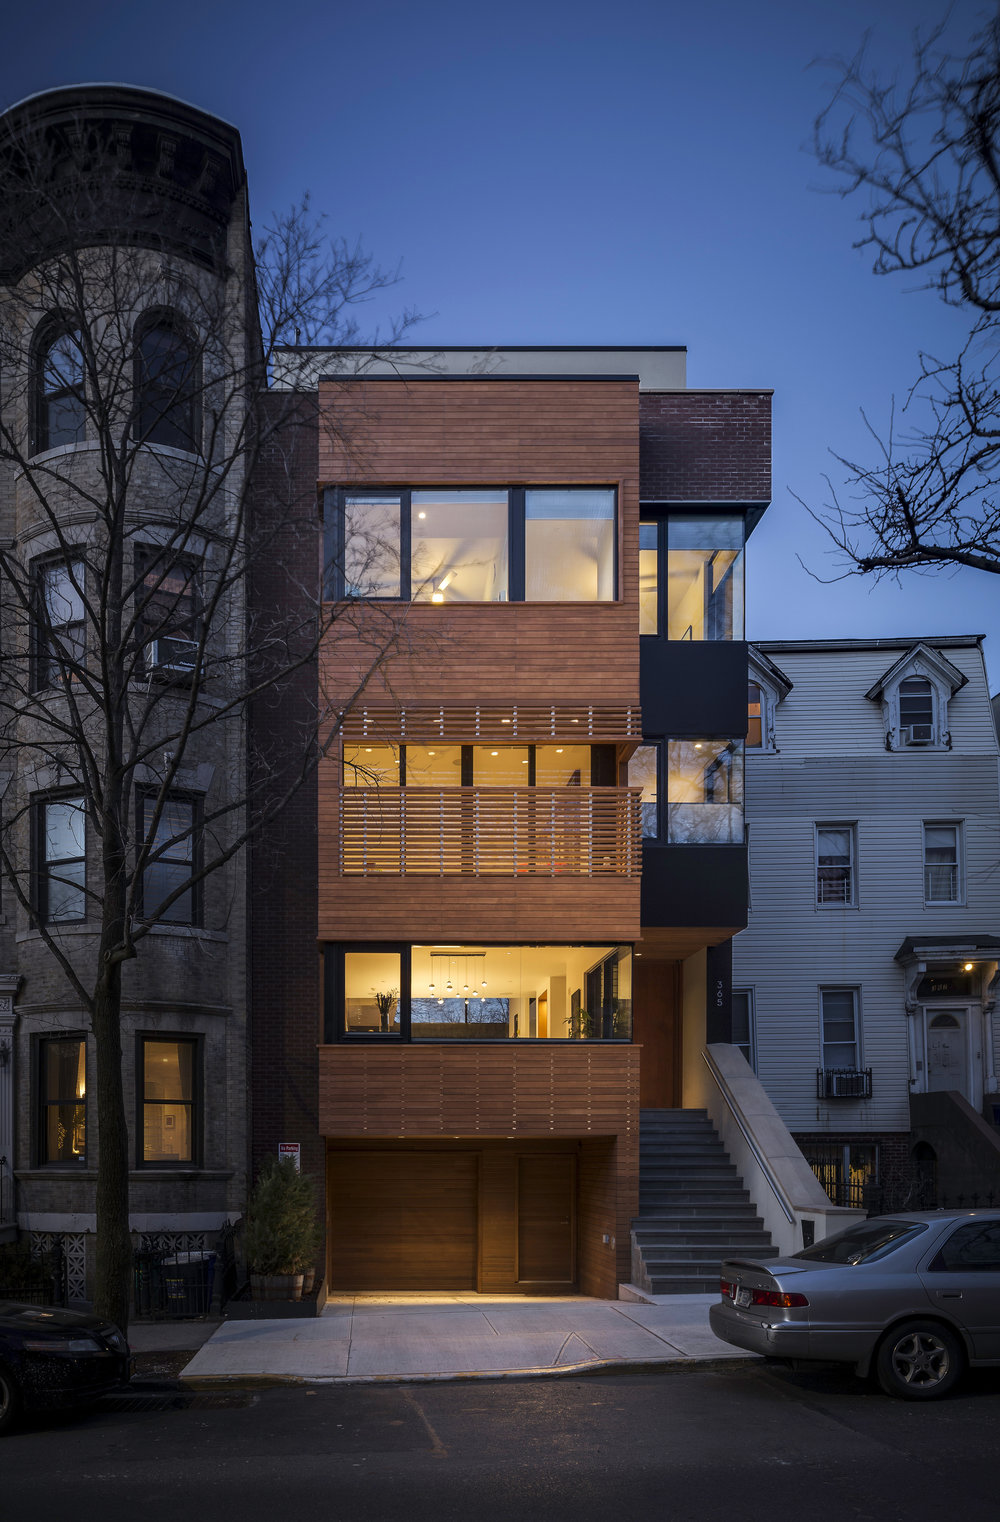 res4-resolution-4-architecture-modern-residential-park-slope-townhouse-exterior-facade-streetview-twilight.jpg